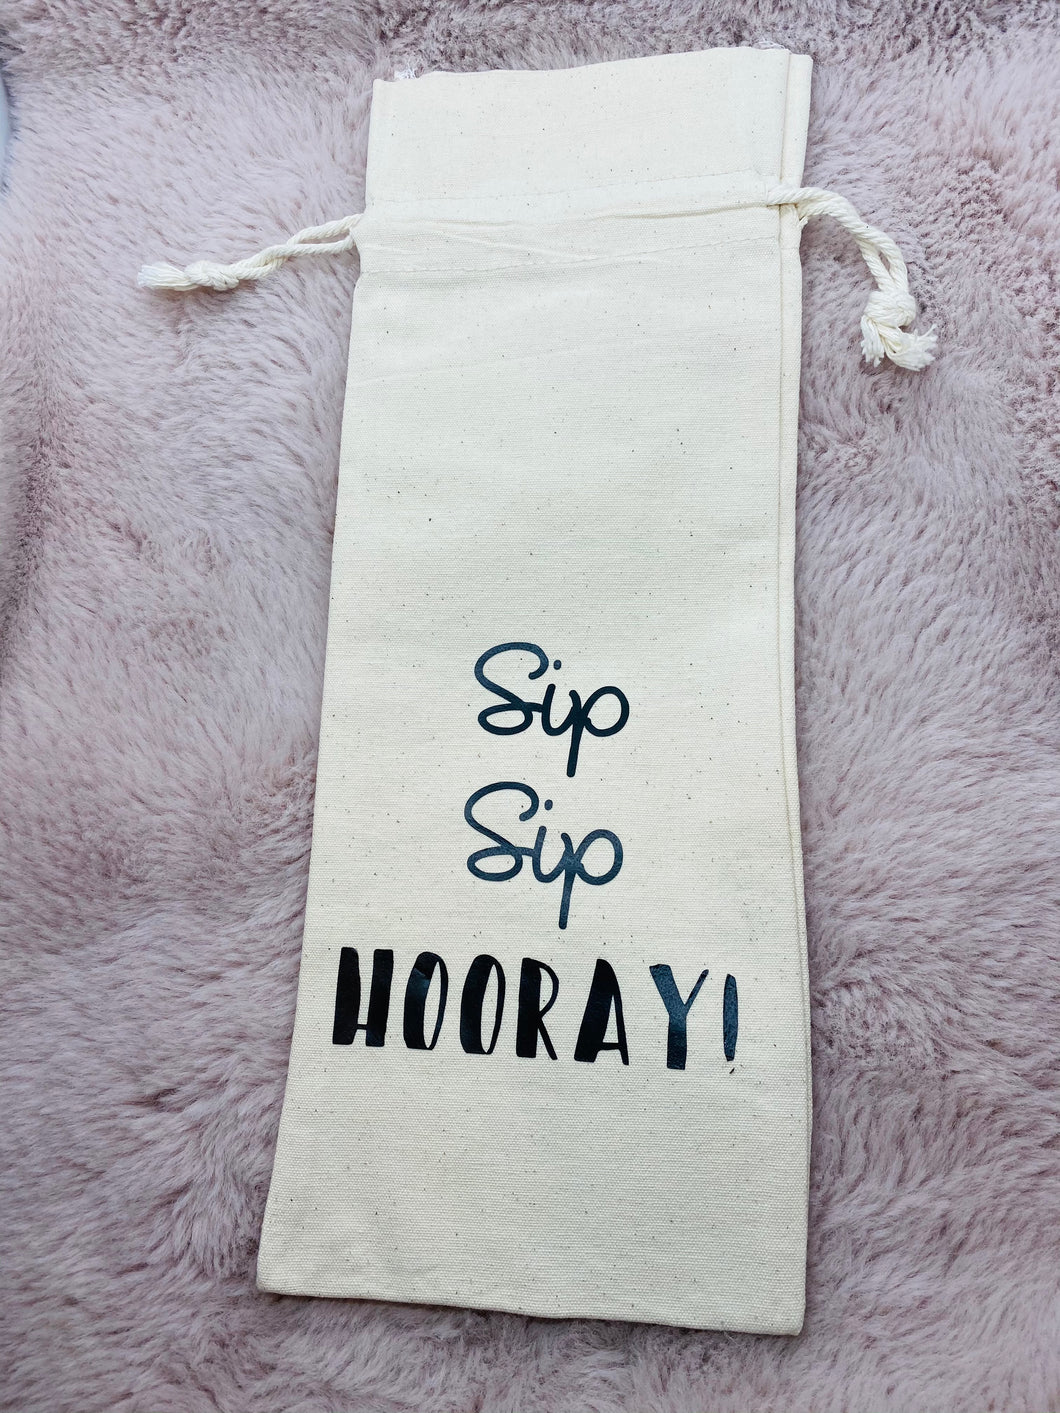 Sip Sip Hooray! Franc It Wine Bag